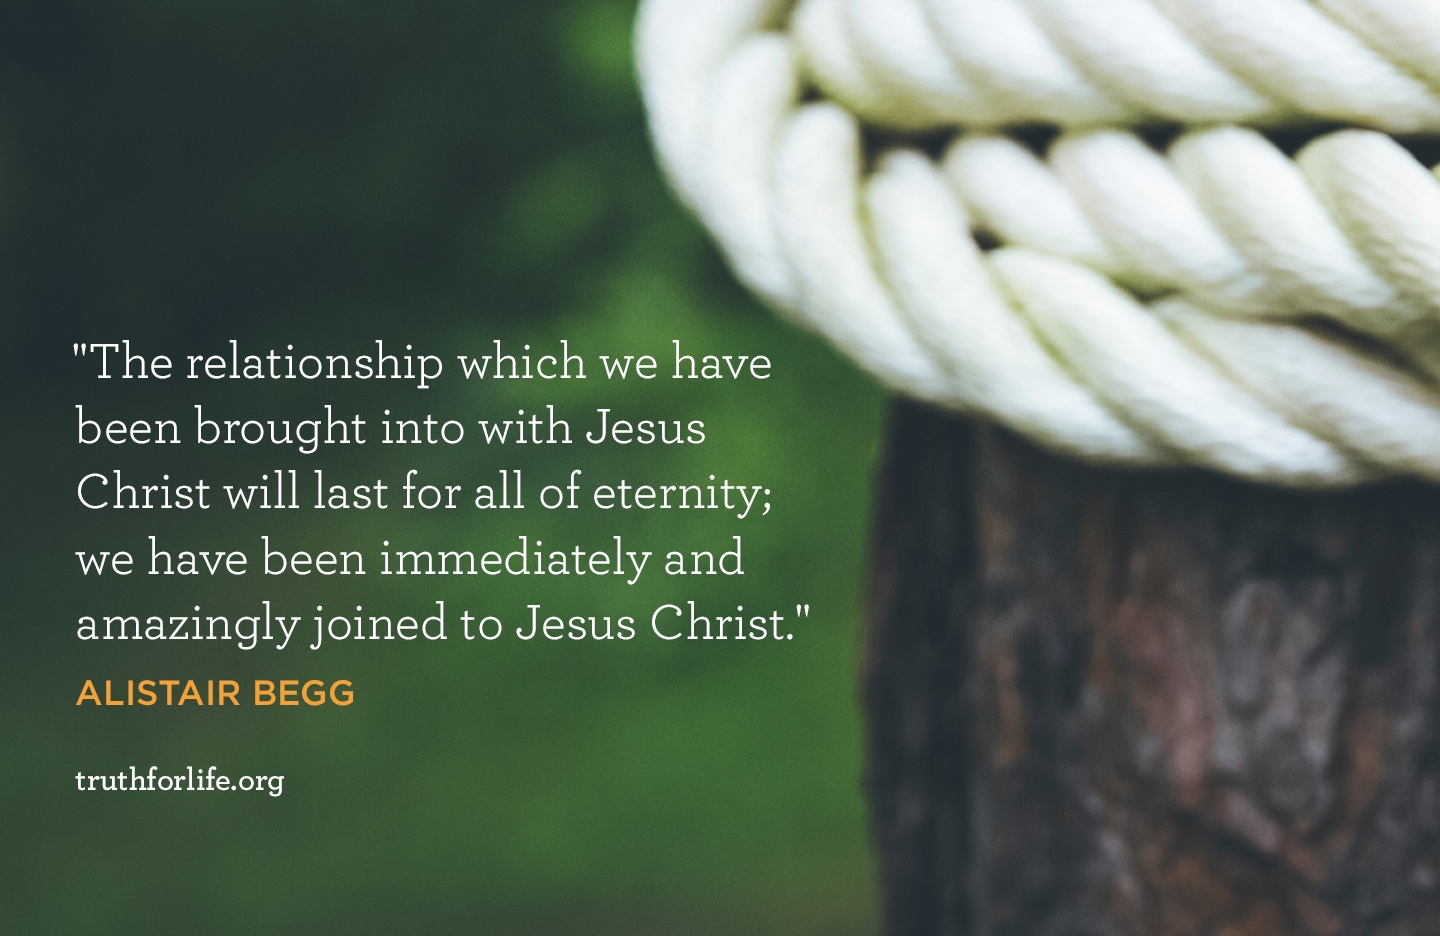 The relationship which we have been brought into with Jesus Christ will last for all of eternity; we have been immediately and amazingly joined to Jesus Christ. - Alistair Begg